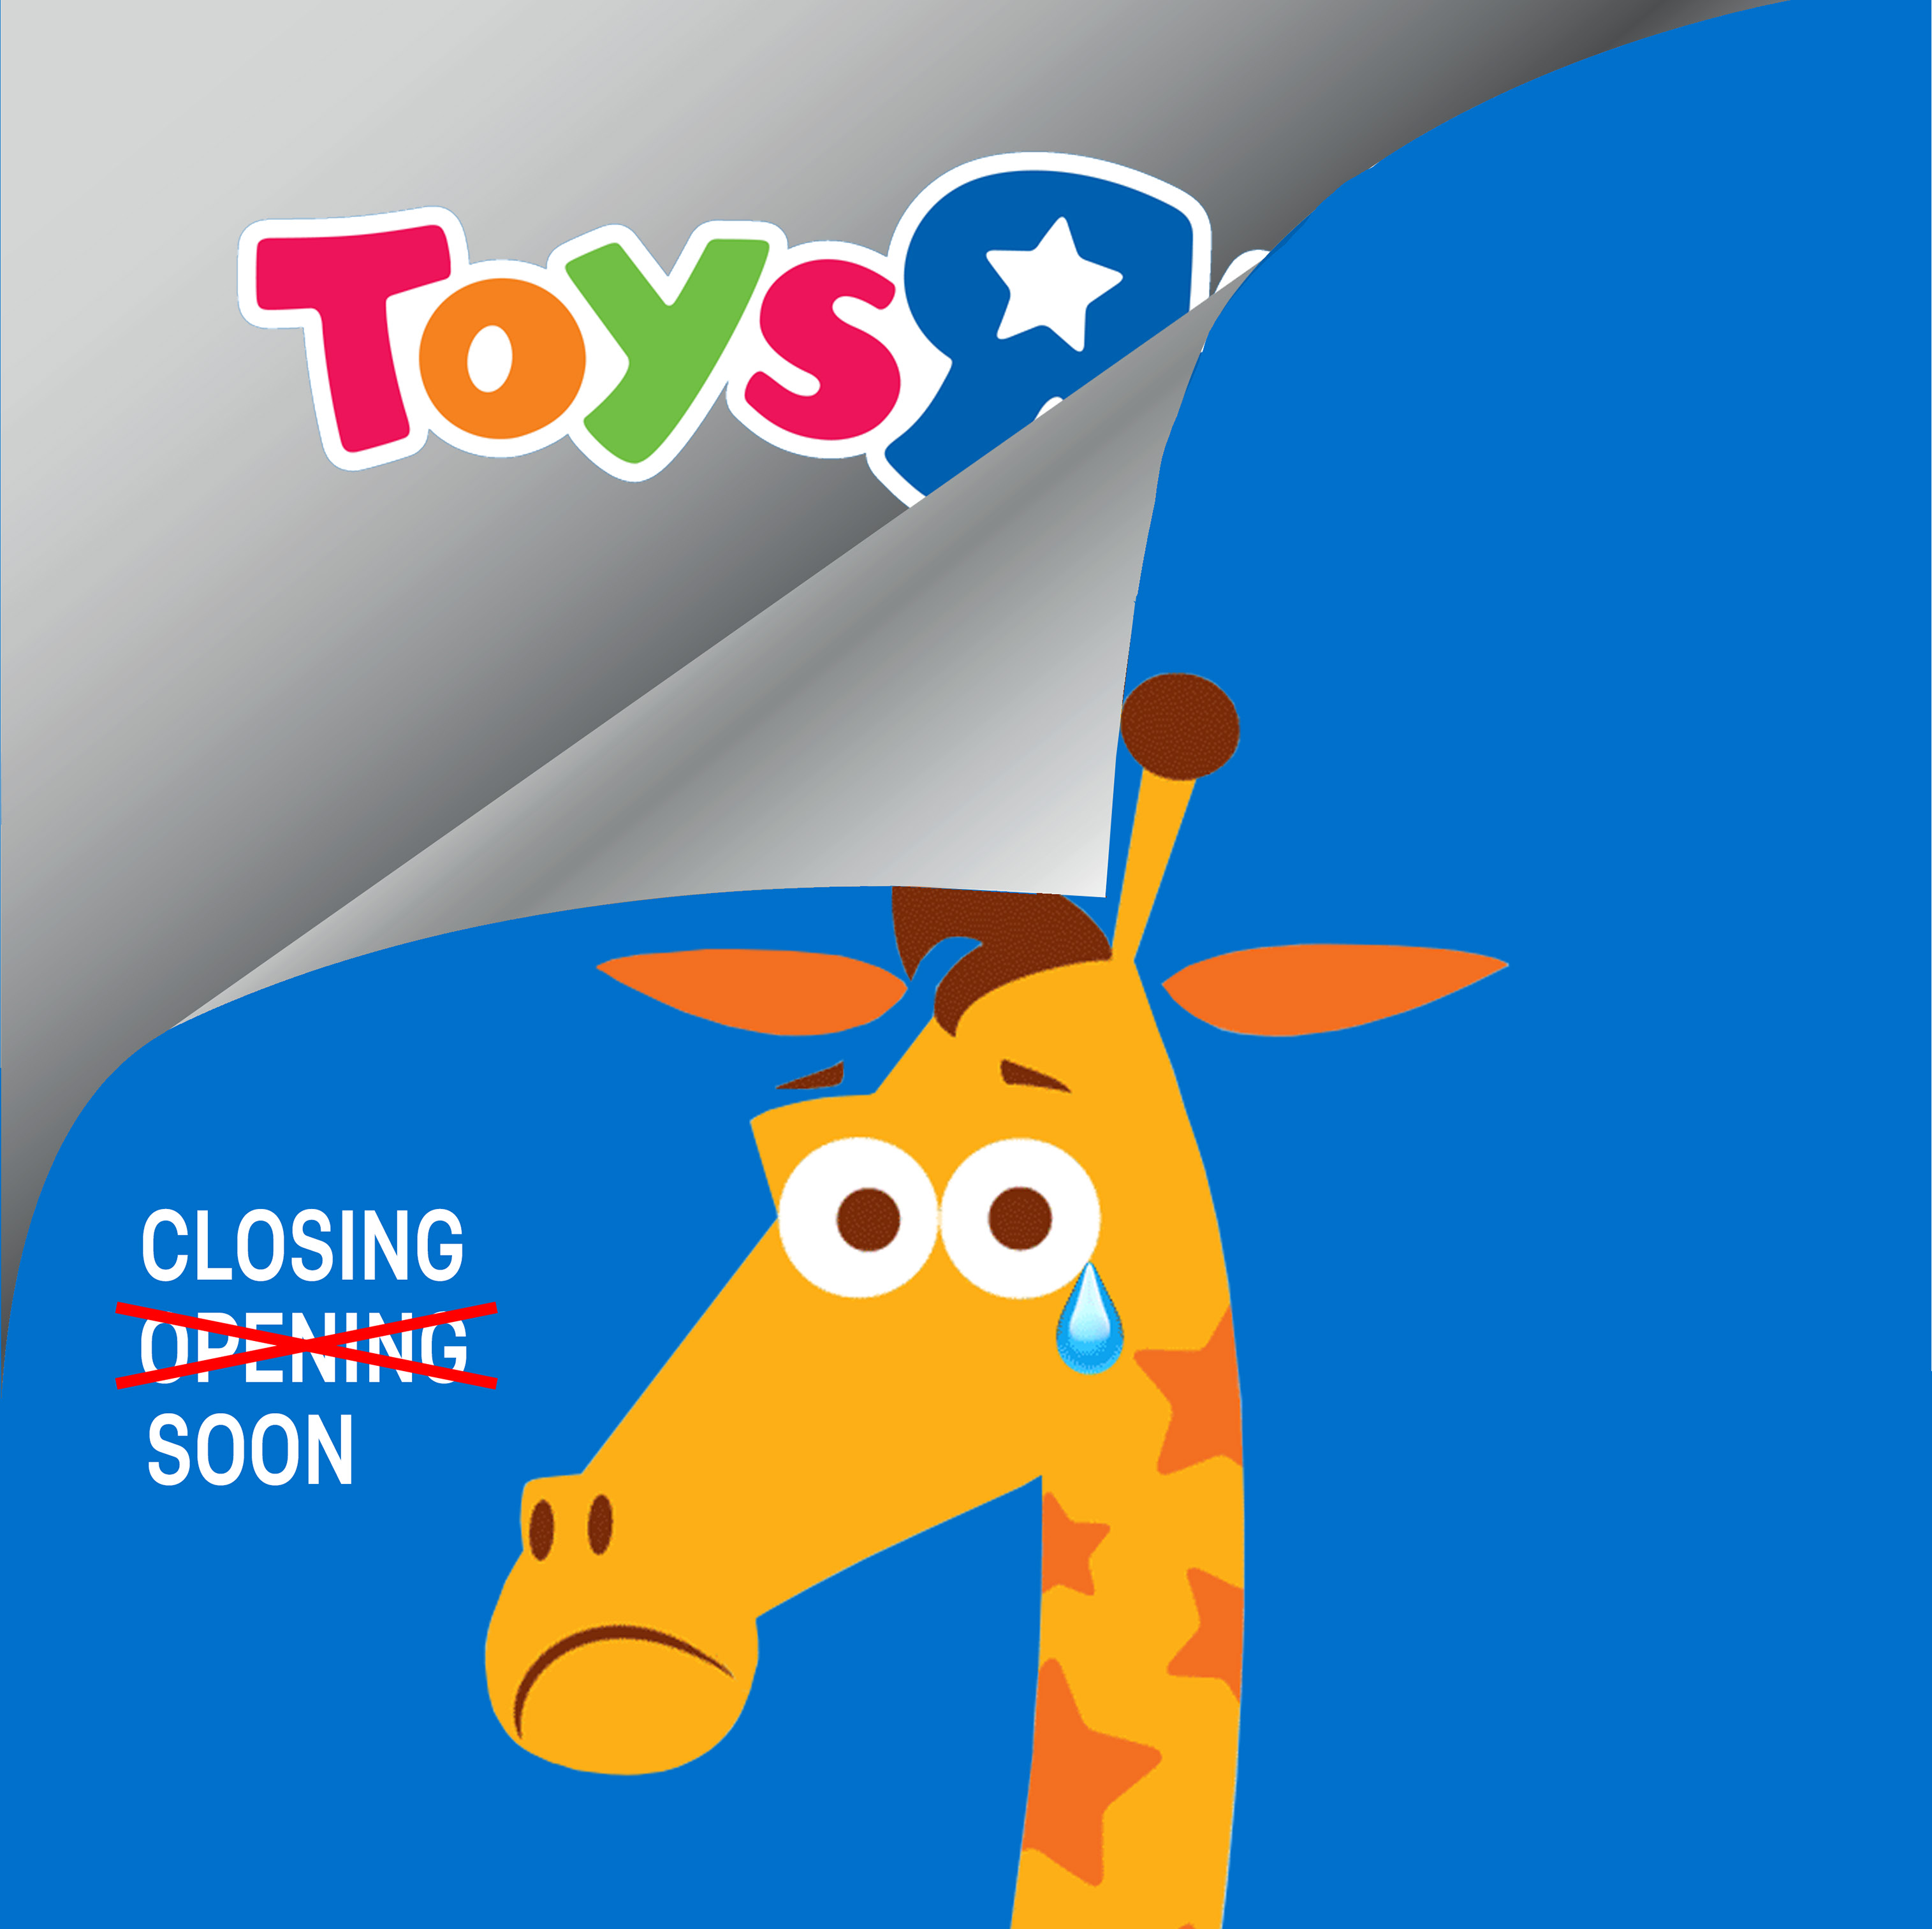 Last Week Toys R Us Announced It Will Close 182 S Nationwide As Struggles To Find A Way Out Of Its Chapter 11 Bankruptcy Filing